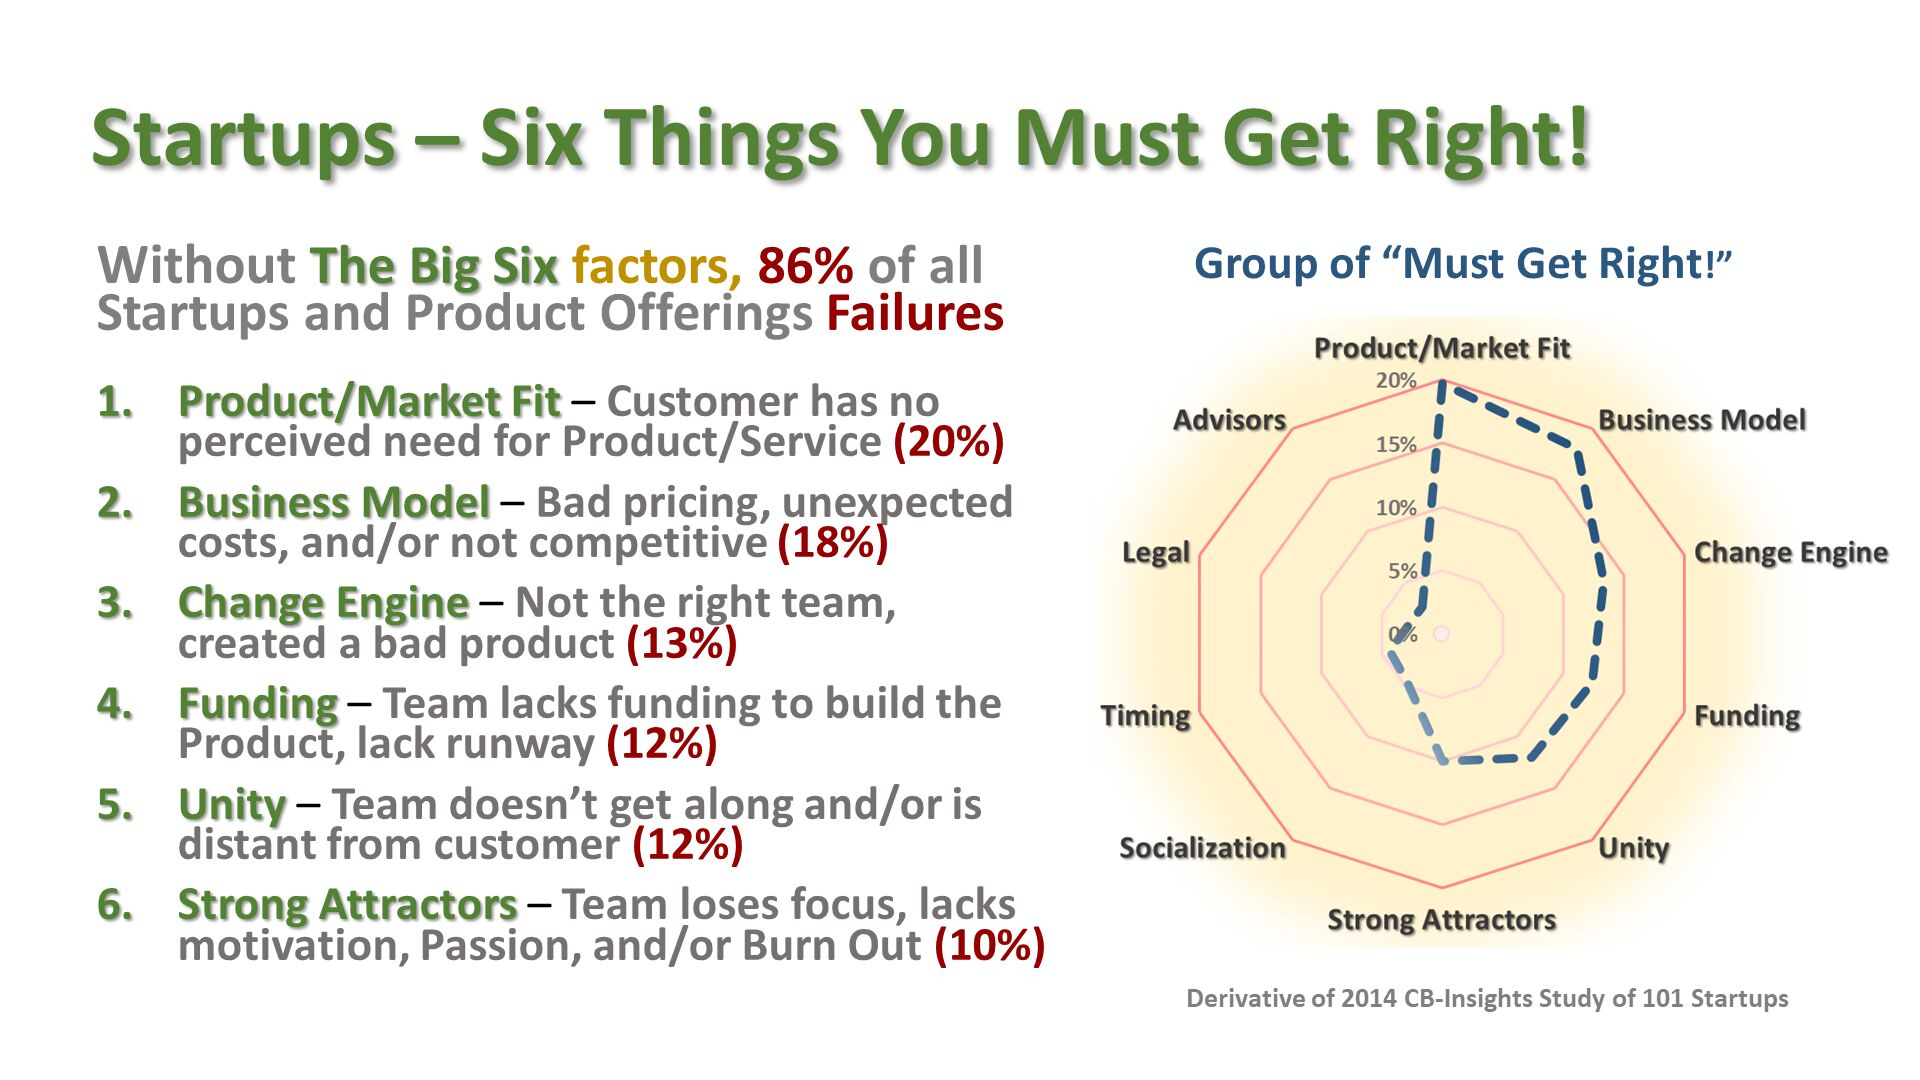 "Startups – Six Things You Must Get Right! . Without The Big Six factors, 86% of all Startups and Product Offerings Failures Product/Market Fit – Customer has no perceived need for Product/Service (20%) Business Model – Bad pricing, unexpected costs, and/or not competitive (18%) Change Engine – Not the right team, created a bad product (13%) Funding – Team lacks funding to build the Product, lack runway (12%) Unity – Team doesn't get along and/or is distant from customer (12%) Strong Attractors – Team loses focus, lacks motivation, Passion, and/or Burn Out (10%) . Group of ""Must Get Right!"". Derivative of 2014 CB-Insights Study of 101 Startups ."